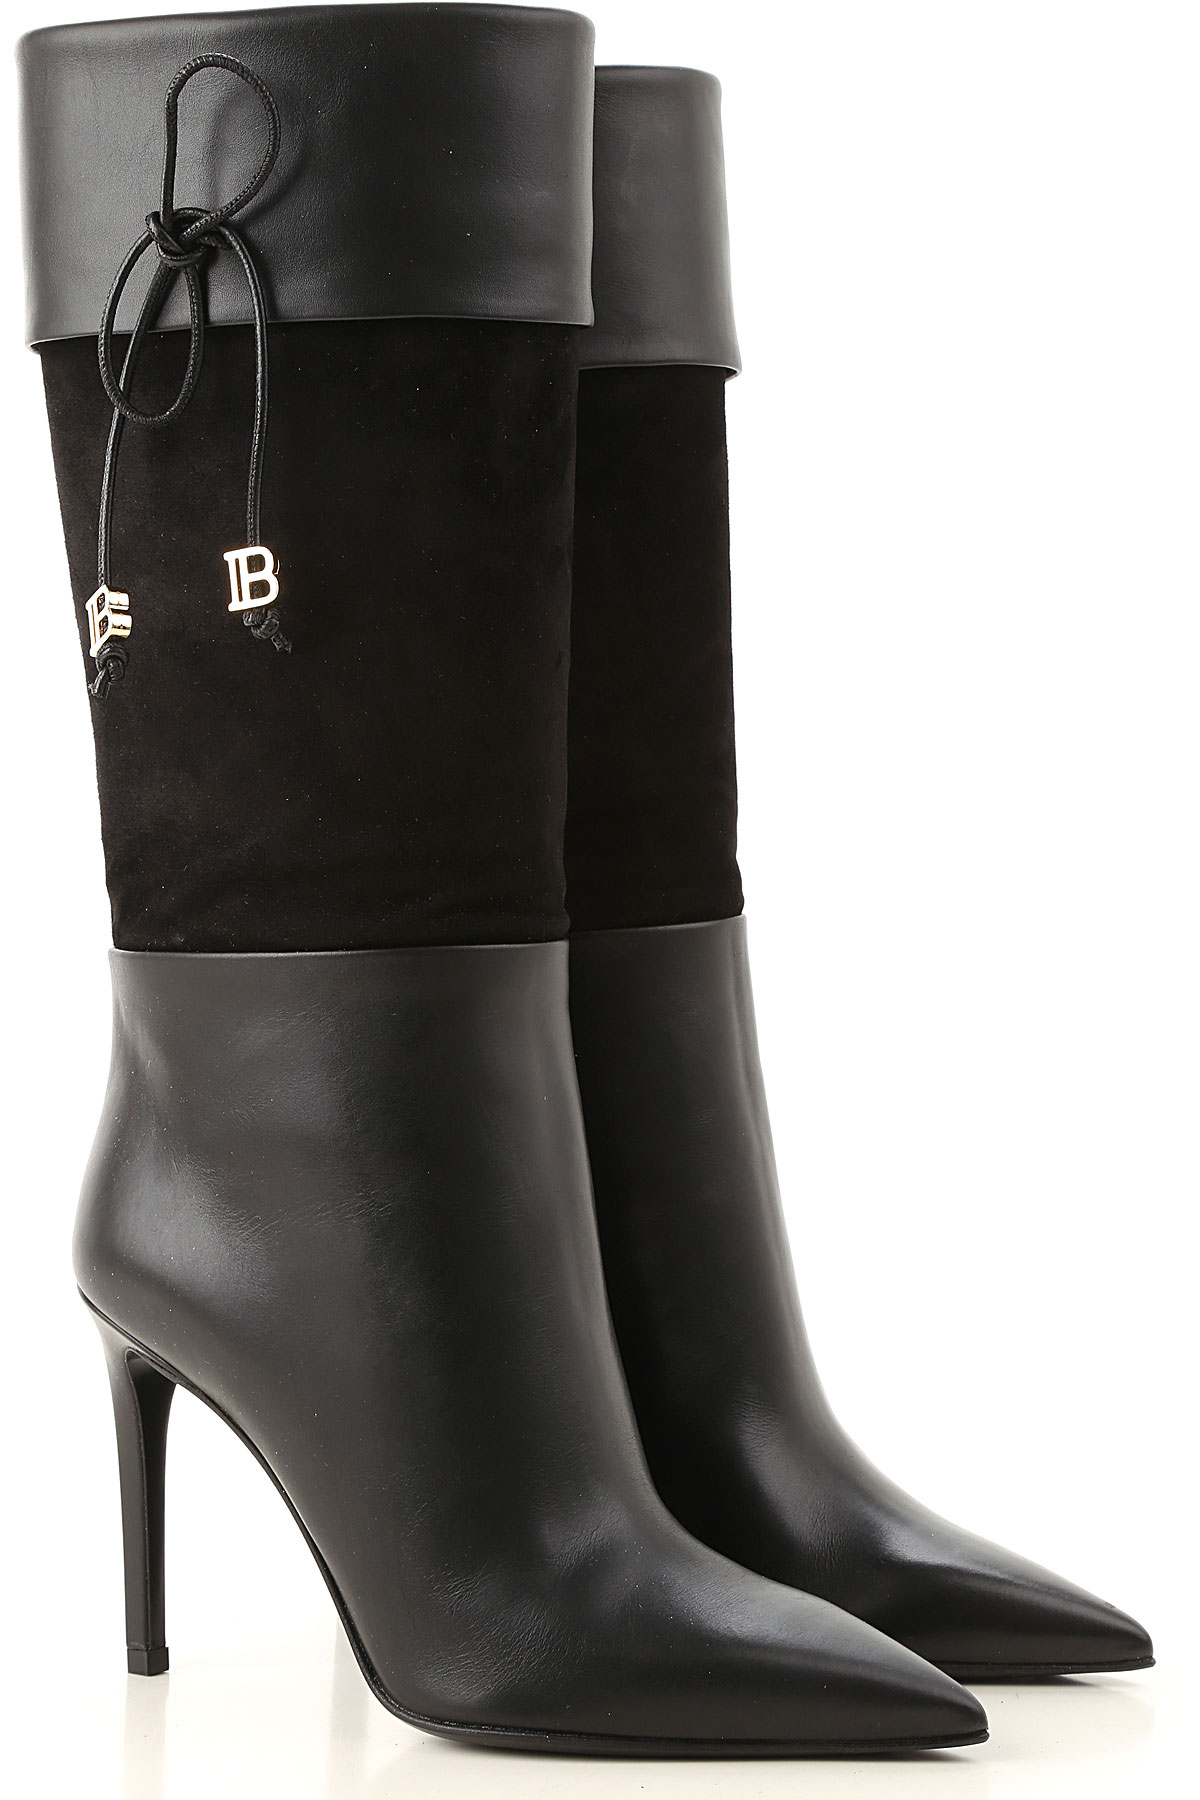 Balmain Boots for Women, Booties On Sale, Black, Leather, 2019, 10 6 6.5 7 8 8.5 9